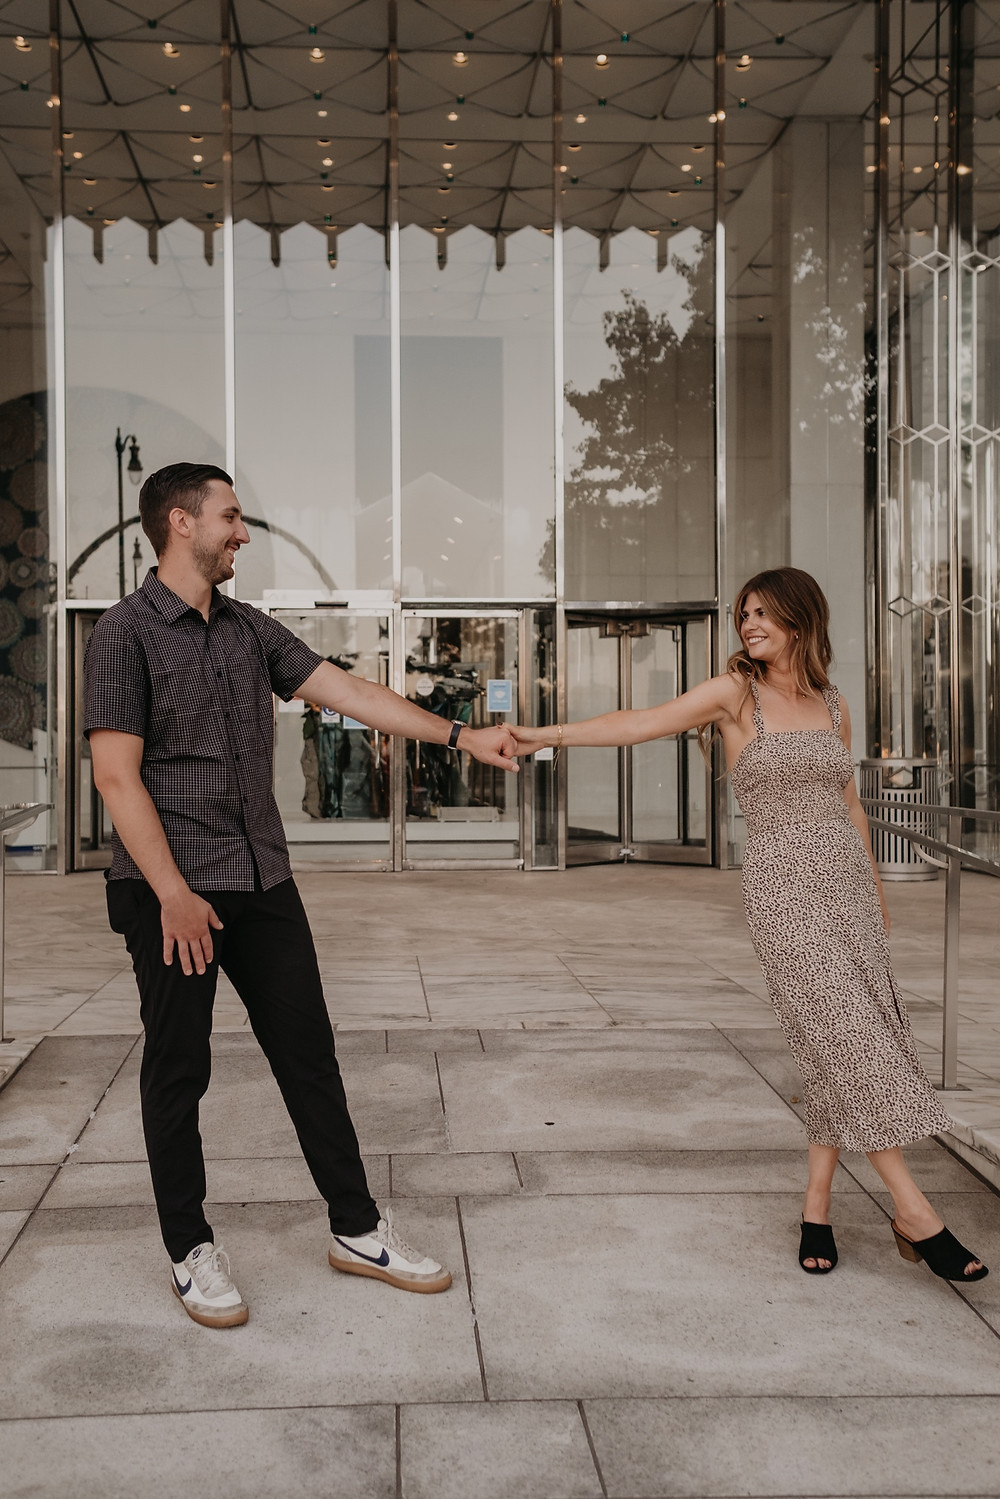 Couple dancing in Detroit for engagement photos. Photographed by Nicole Leanne Photography.